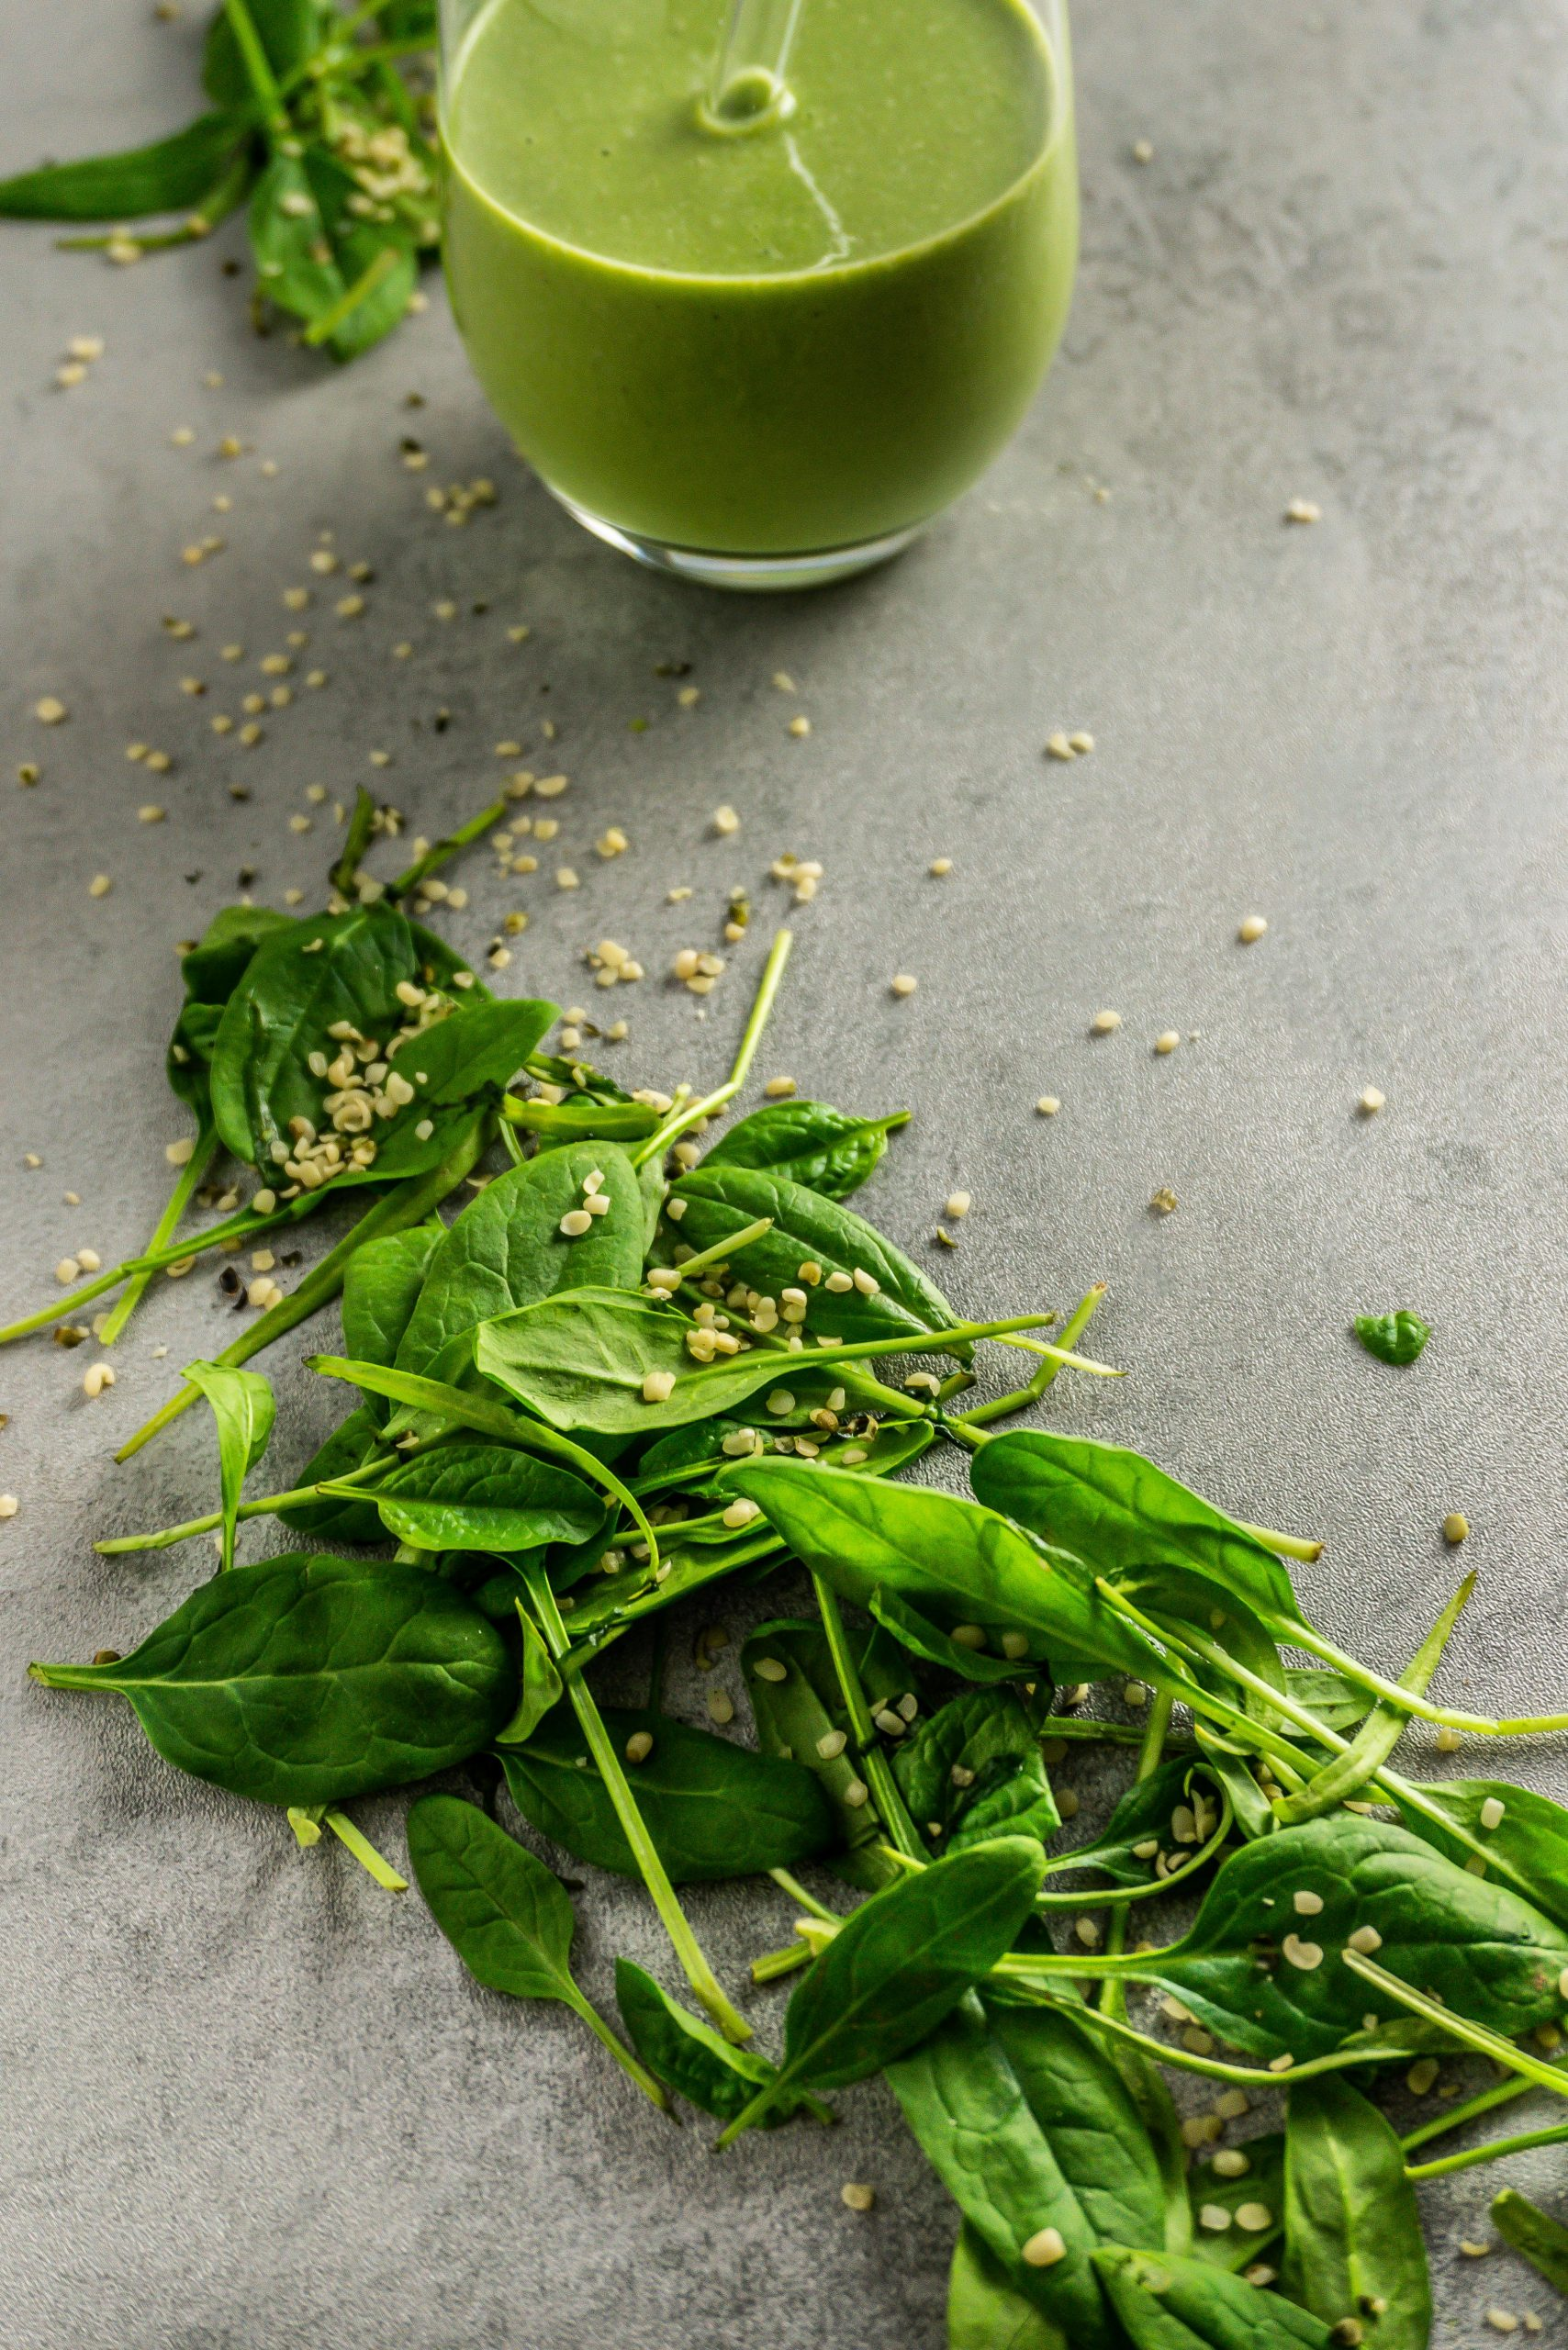 Spinach and hemp seeds scattered on a grey background with a Green Monster Smoothie in the background.